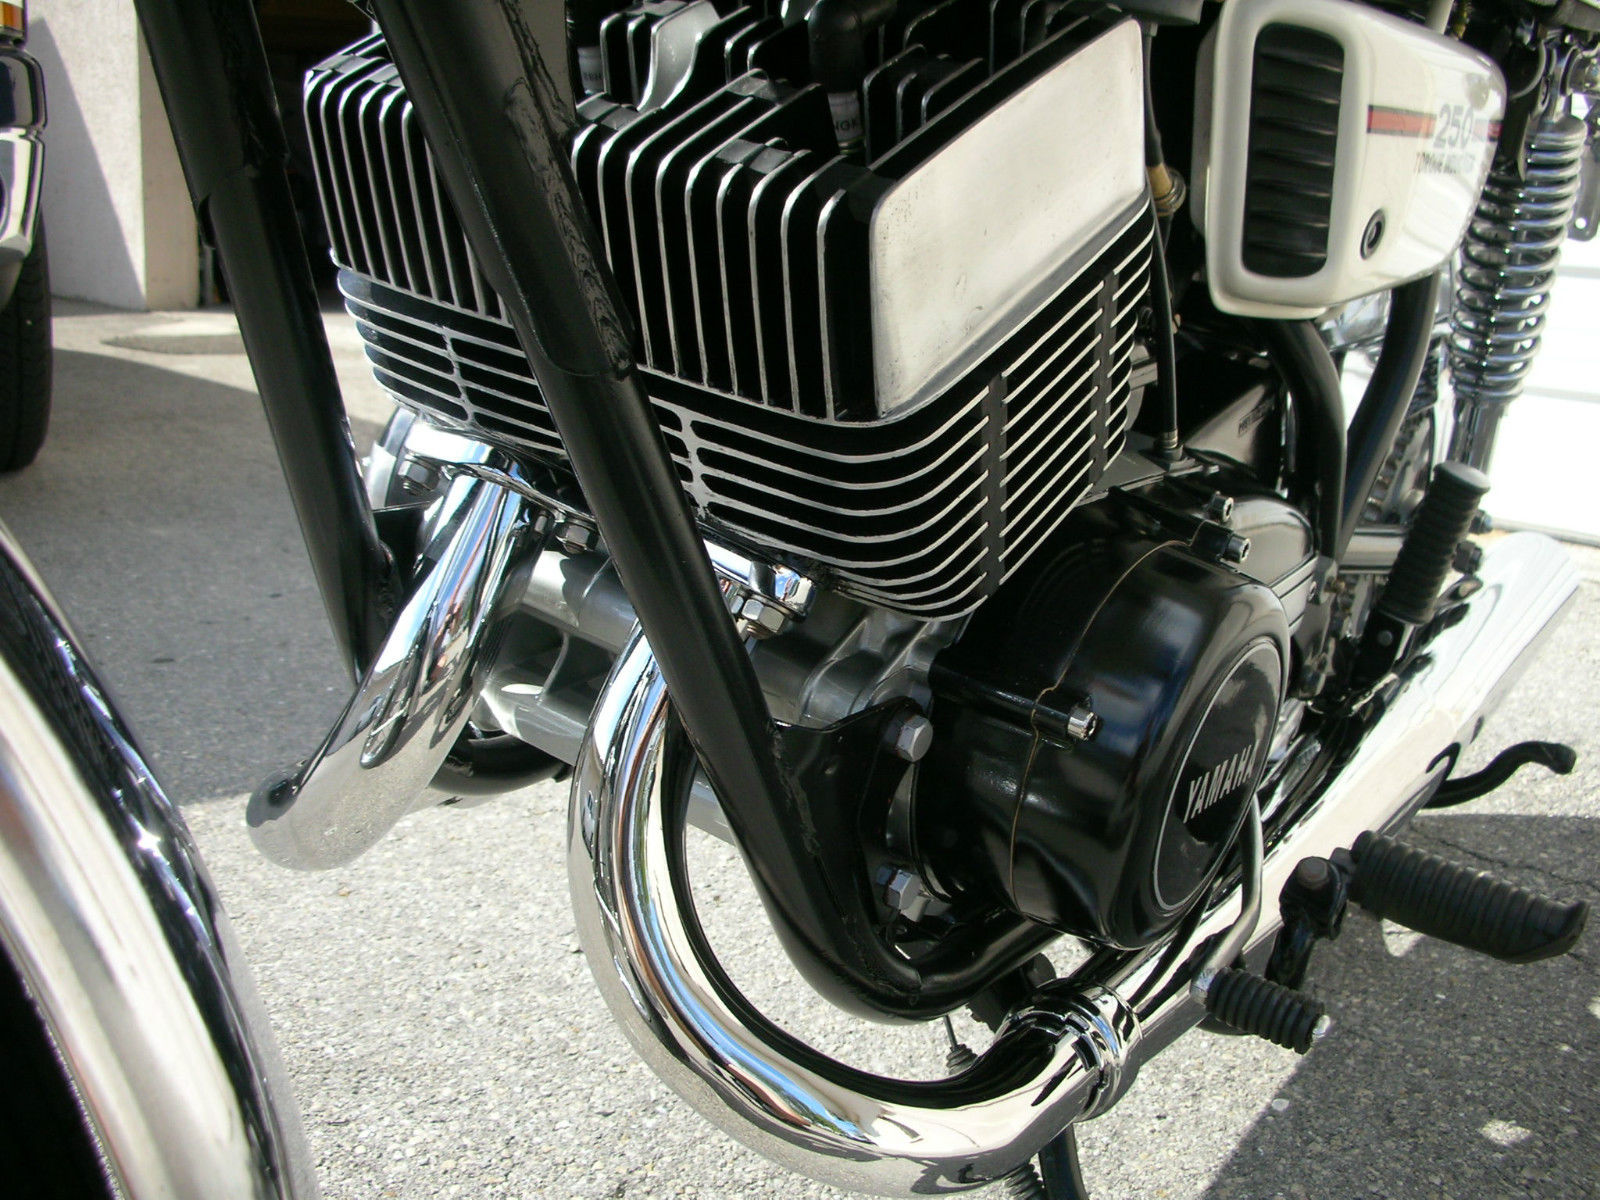 Yamaha RD250B - 1975 - Cylinder Heads and Exhausts.